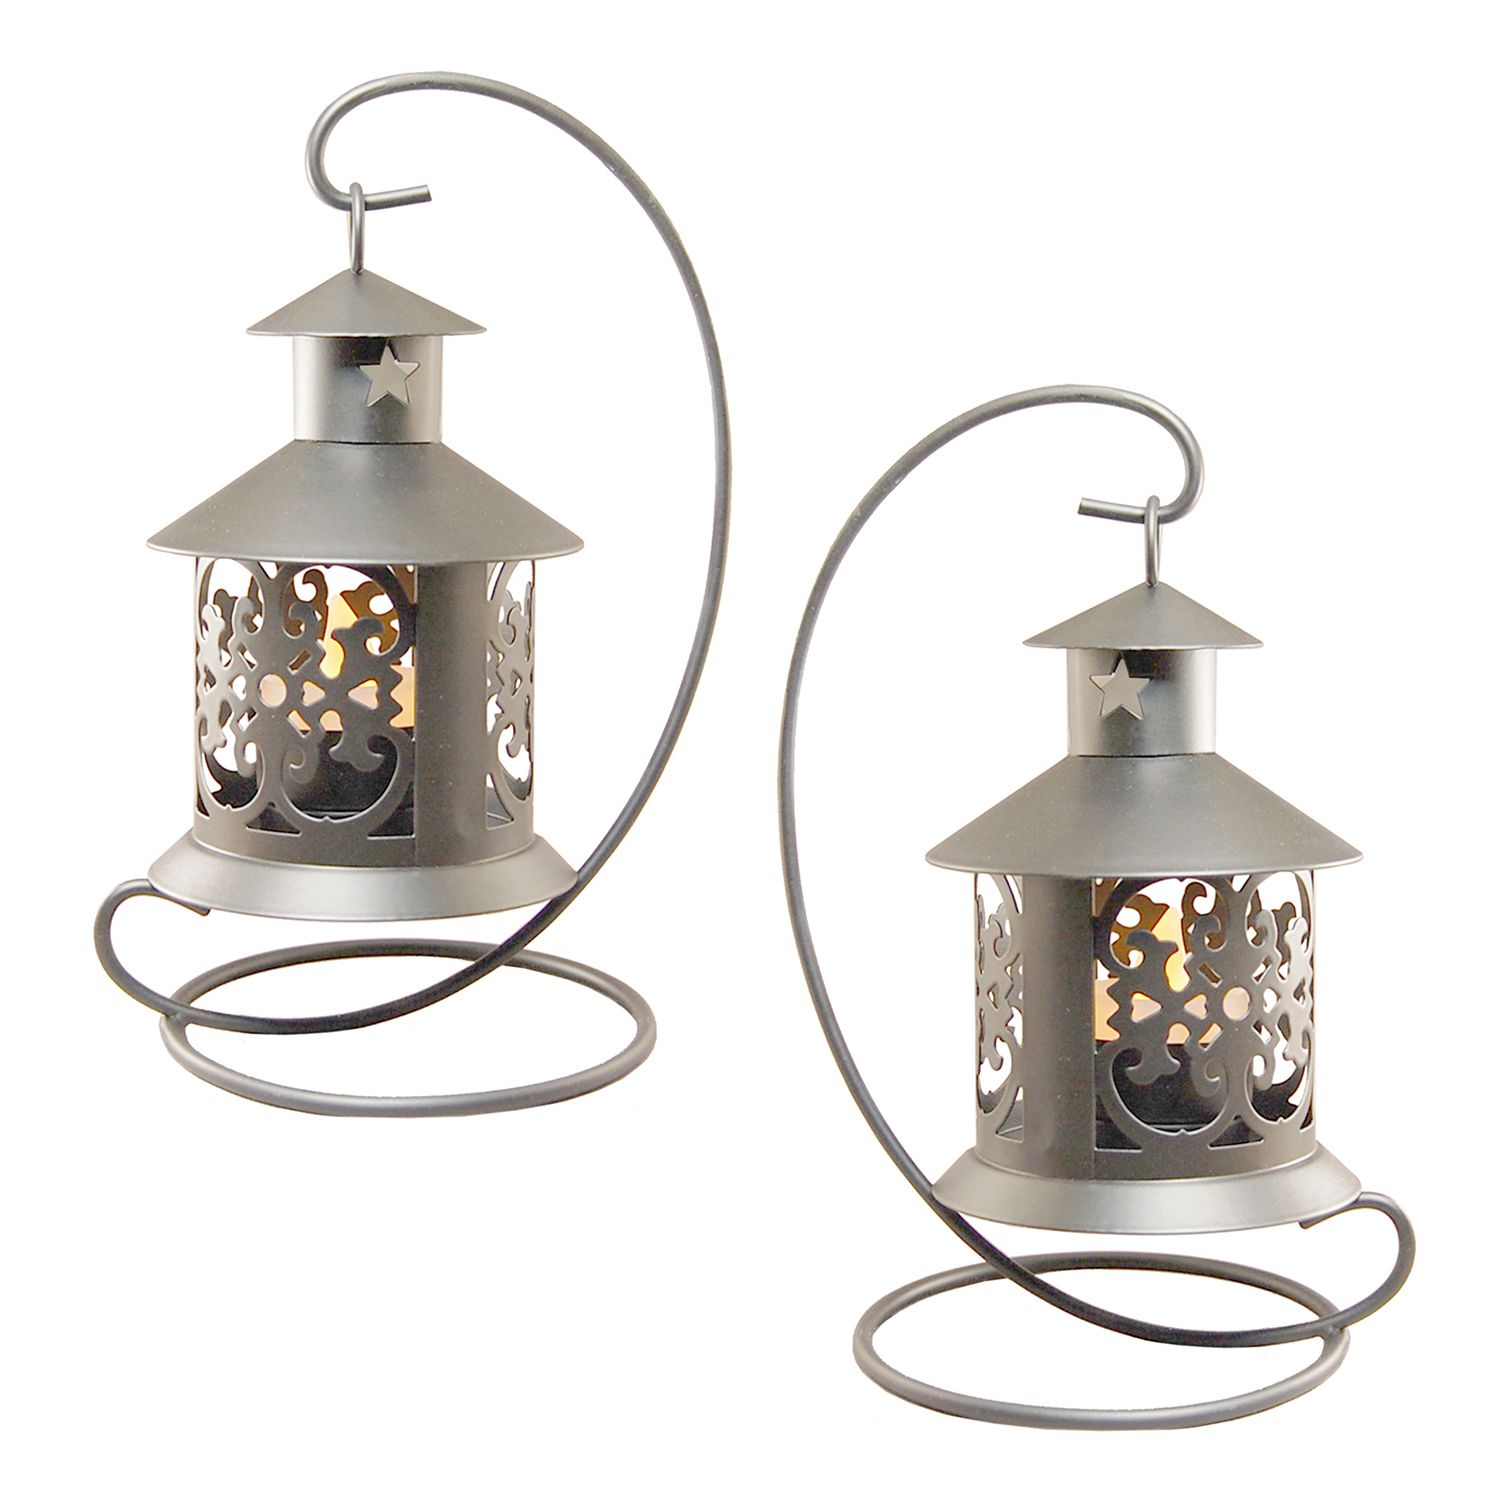 LumaBase Elegant Metal Tabletop Candle Lantern 2 Piece Set